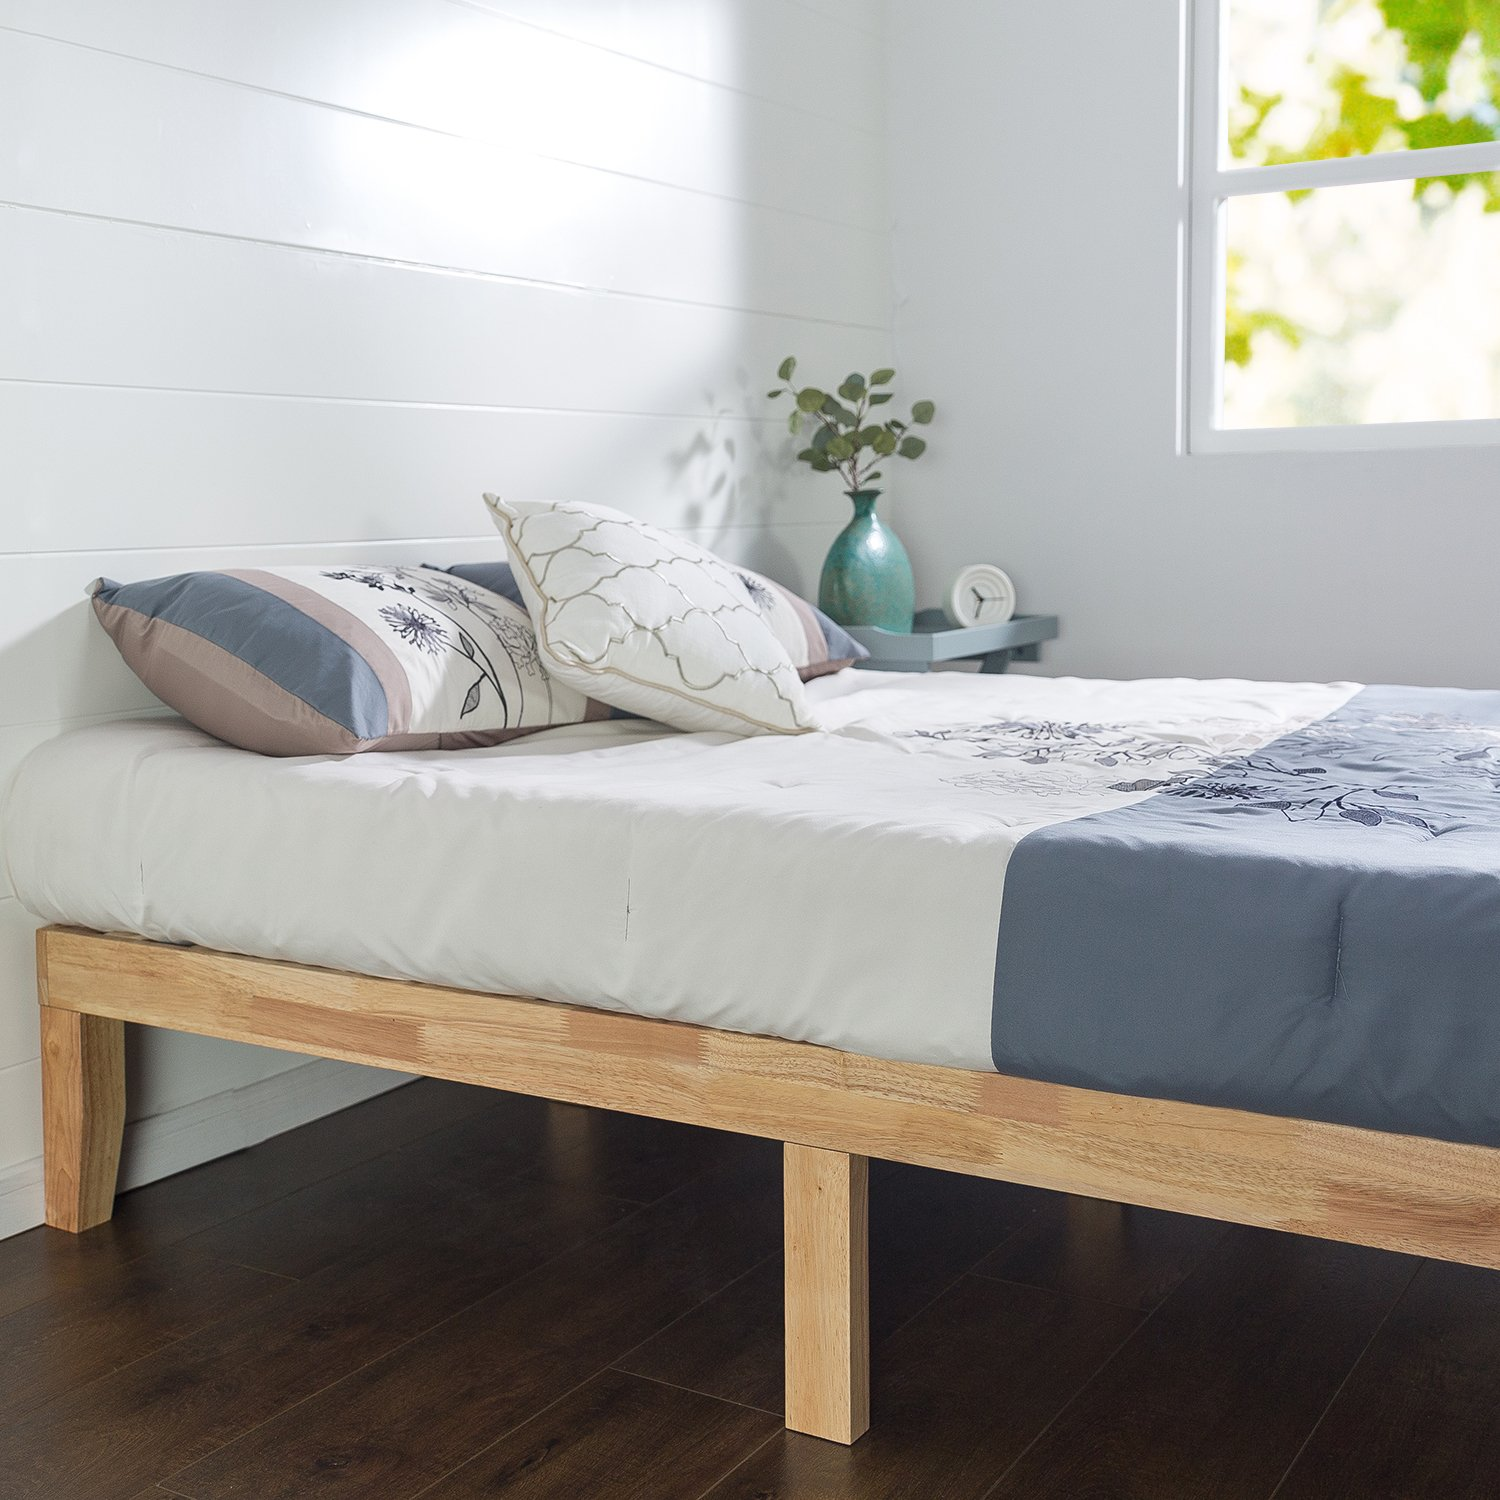 Zinus 14 Inch Wood Platform Bed / No Boxspring Needed / Wood Slat Support / Natural Finish, Twin by Zinus (Image #3)